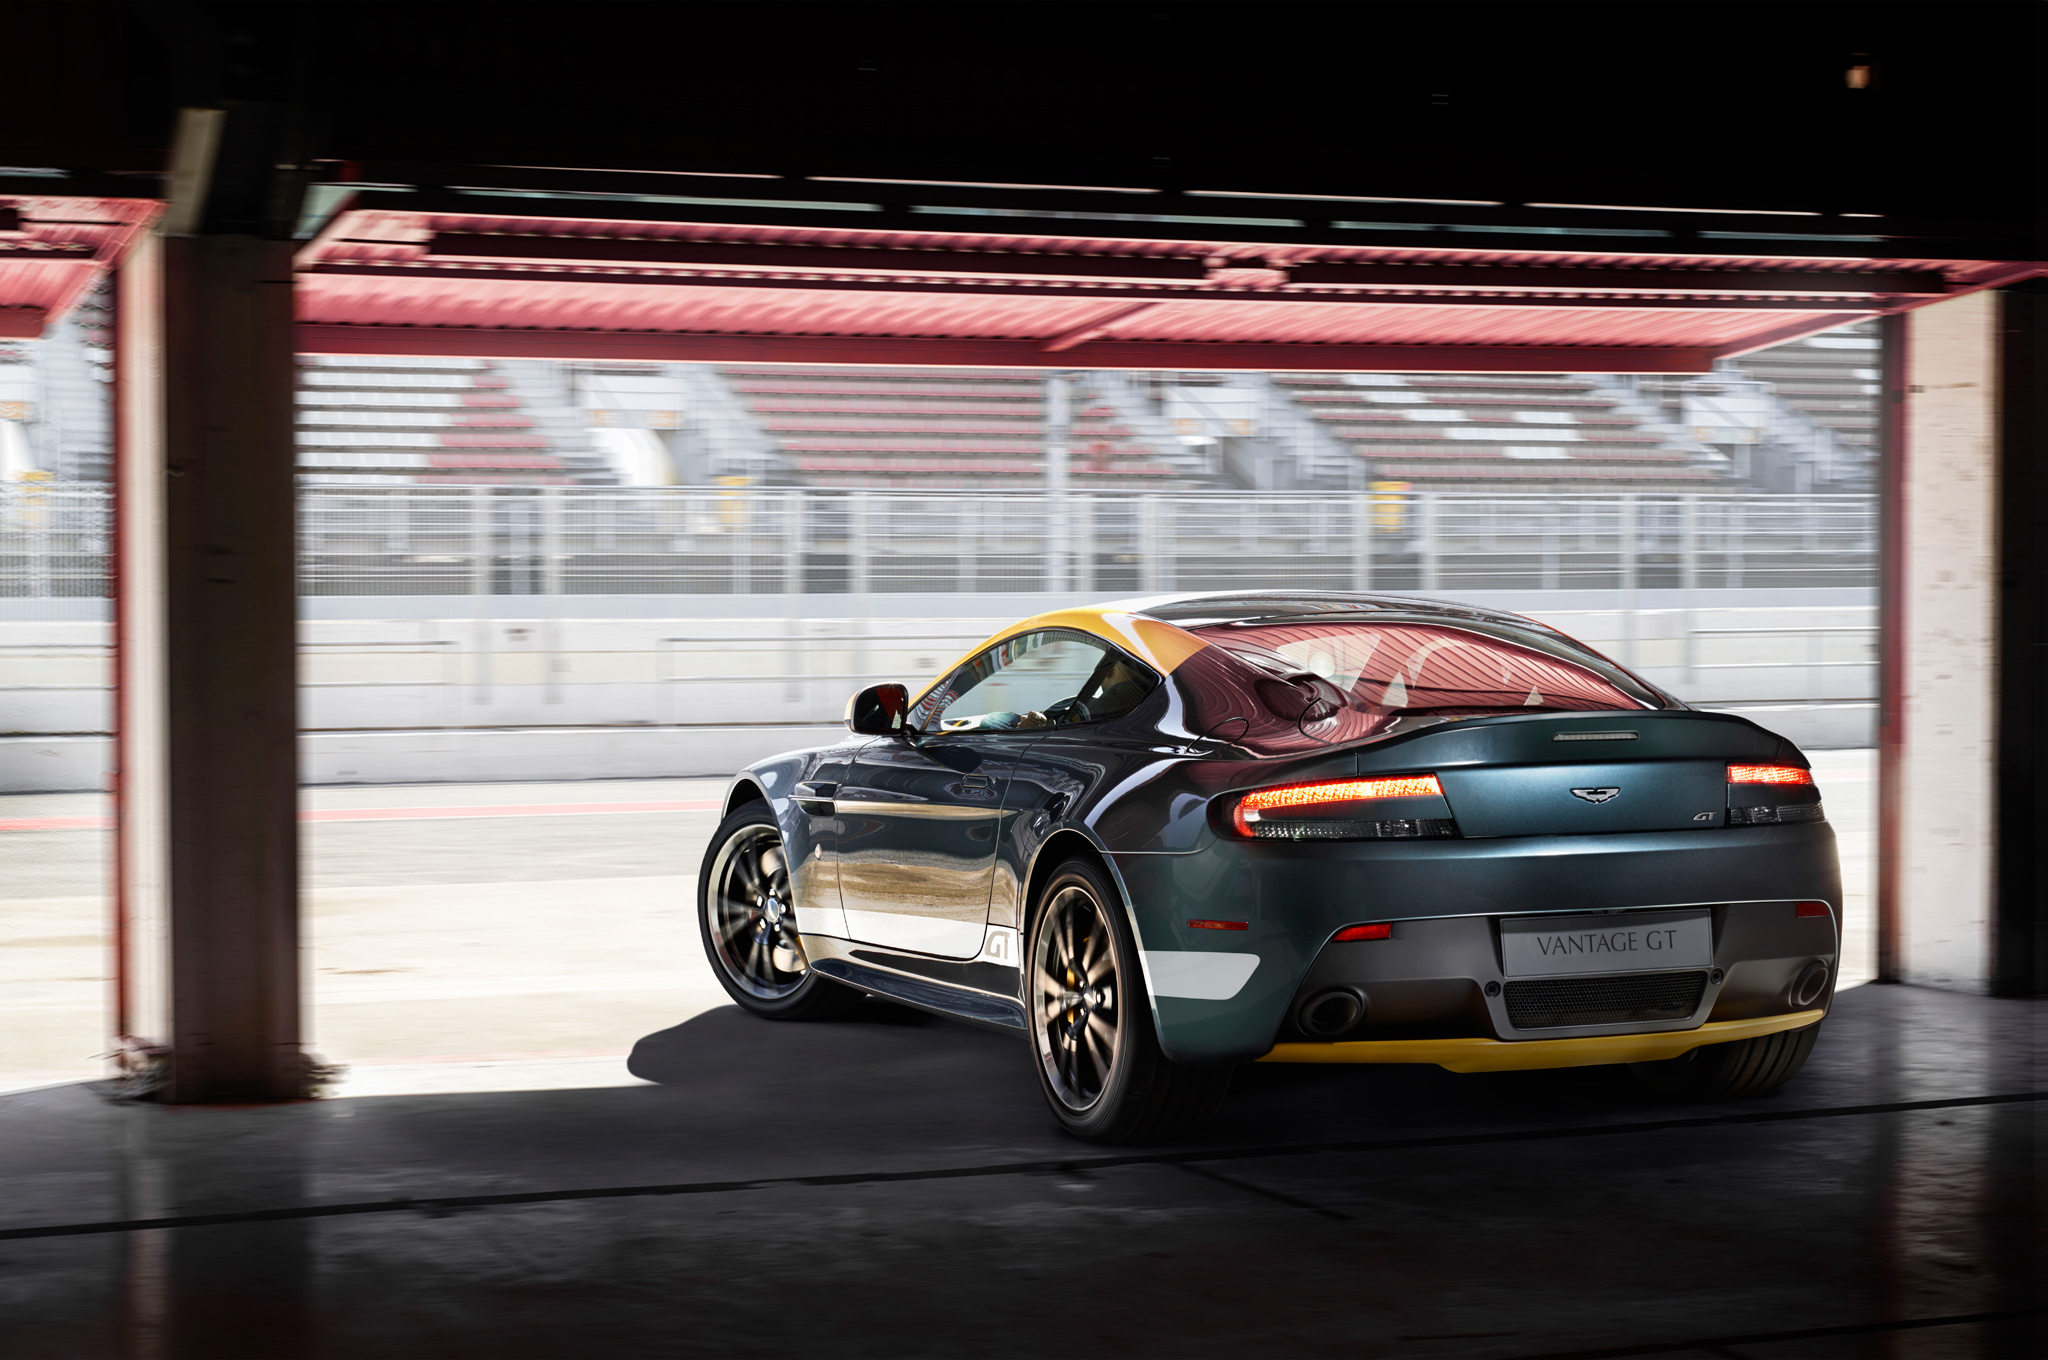 2015 Aston Martin V8 Vantage Gt Rear View (View 2 of 7)